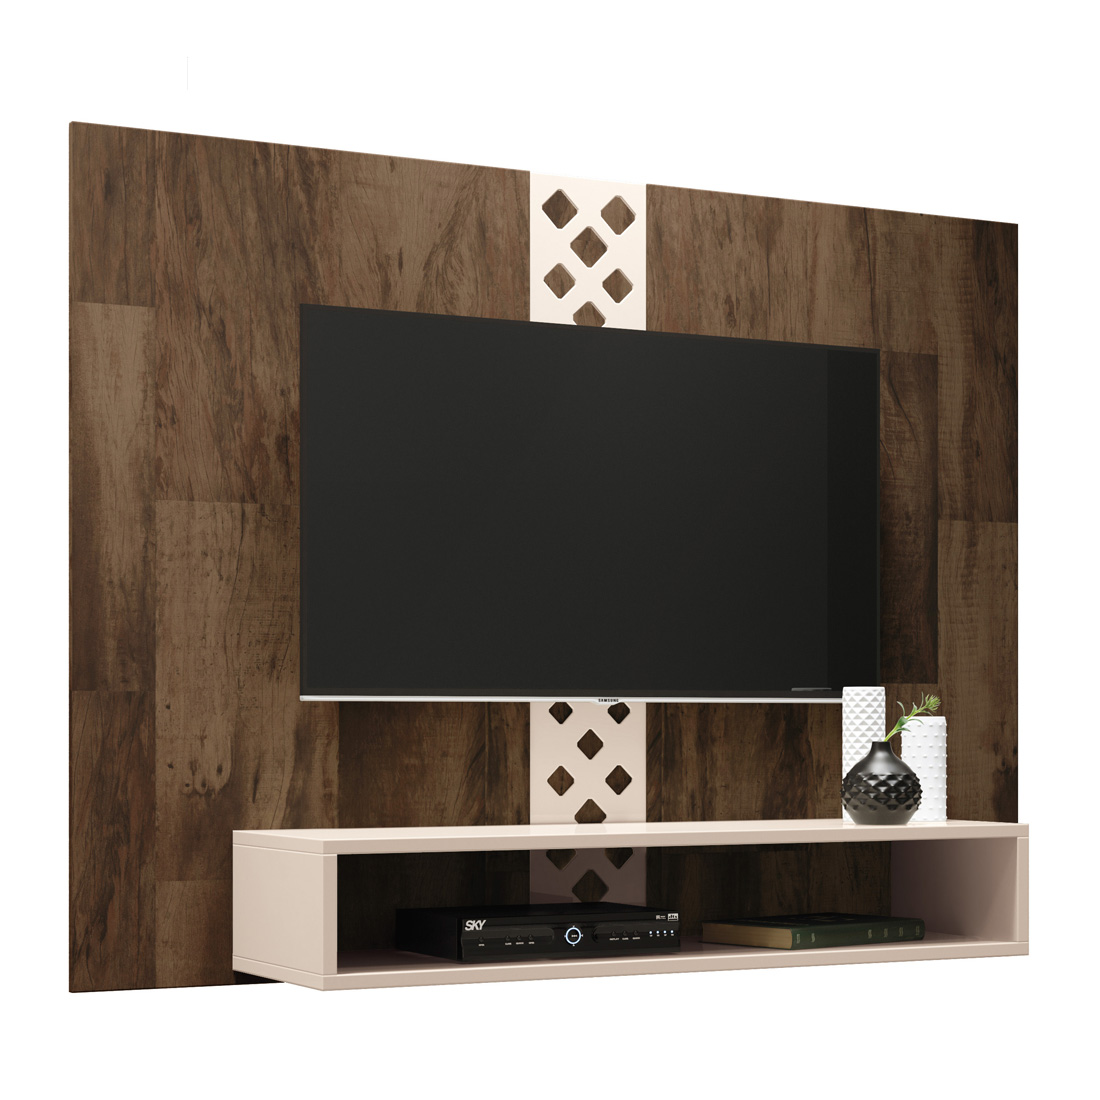 Mueble Panel FORM Color Deck-Offwhite para TV de Hasta 47 Pulgadas